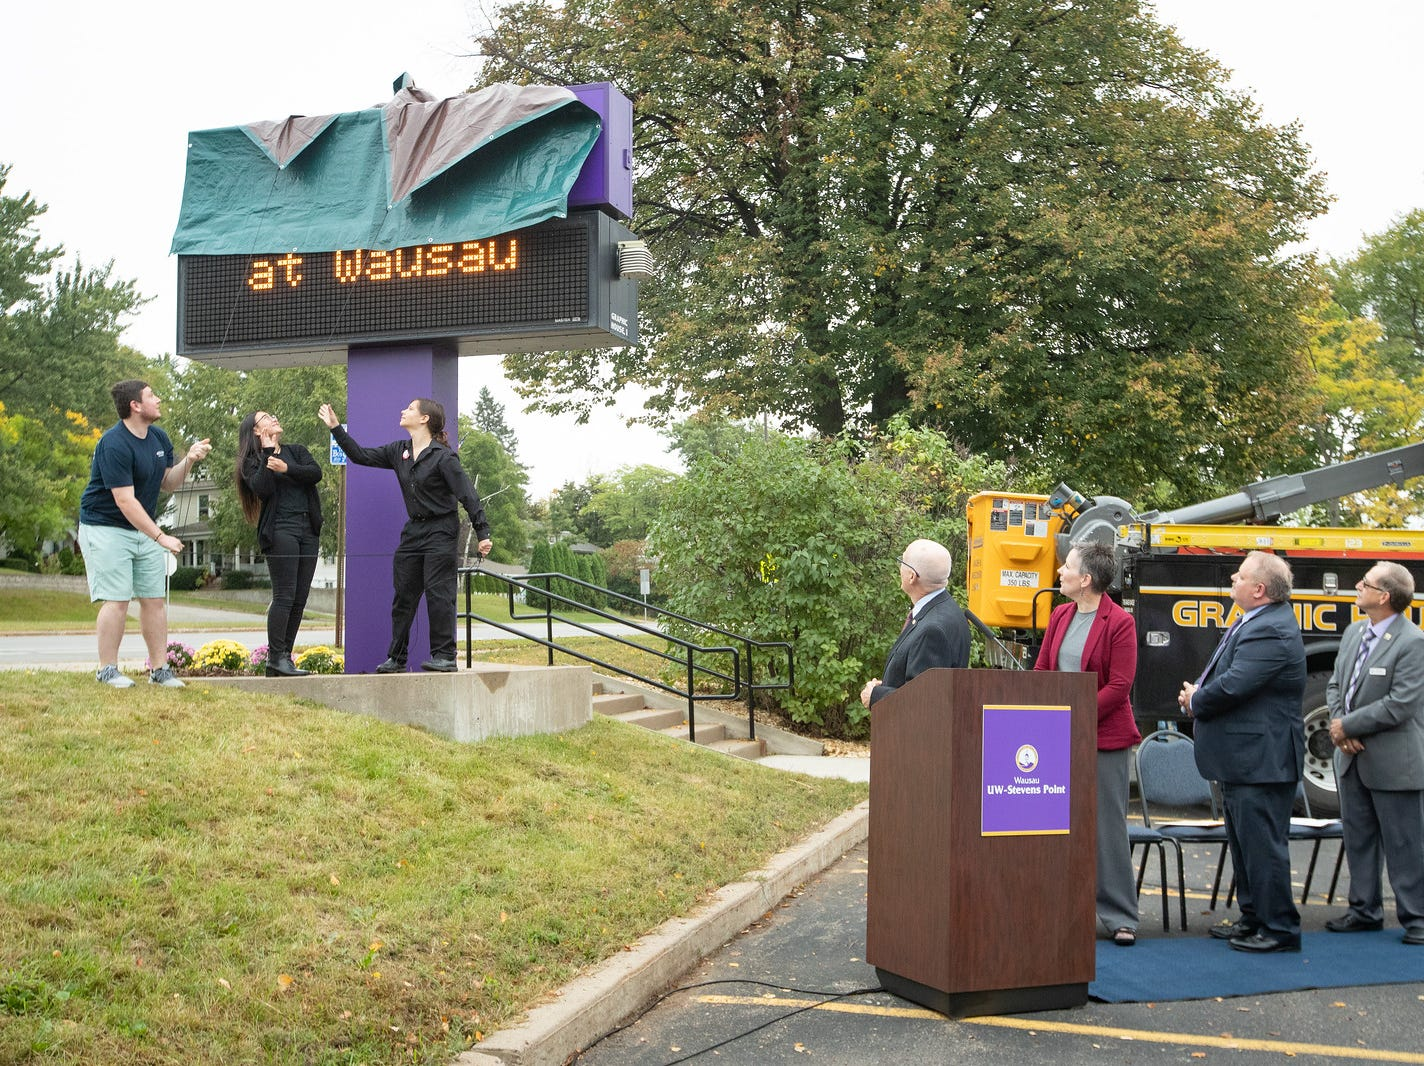 University of Wisconsin-Stevens Point at Wausau students Christian Bump, Cassandra Xiong and Grace Stolen unveil a new campus sign Sept. 19 on the former University of Wisconsin Marathon County campus.